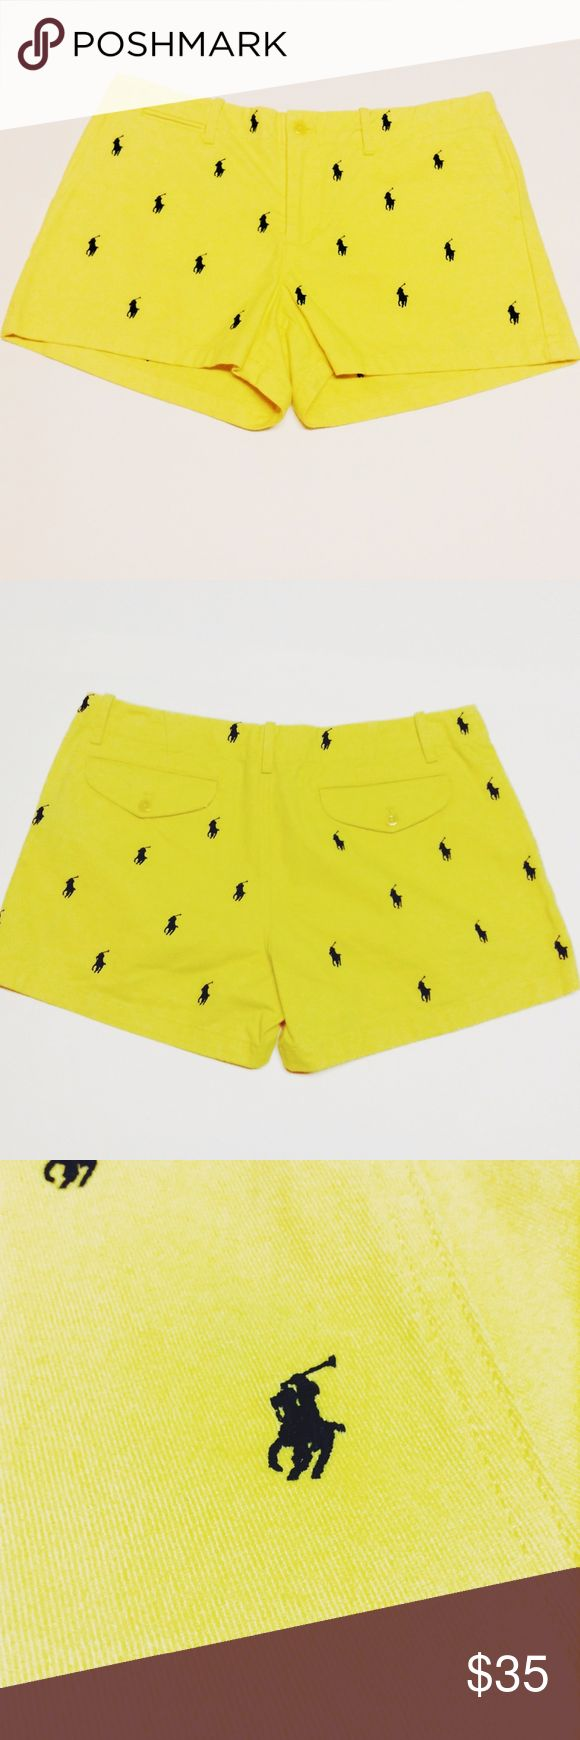 """Sale✨Polo Ralph Lauren Sport Shorts Yellow Polo Ralph Lauren Sport shorts with navy embroidered Polo logo. Soft and NWT. Size 8.  Measurements: Waist:16.5"""" Rise from center inseam to top of waist:8.75"""" Inseam:3.5"""" Polo by Ralph Lauren Shorts"""